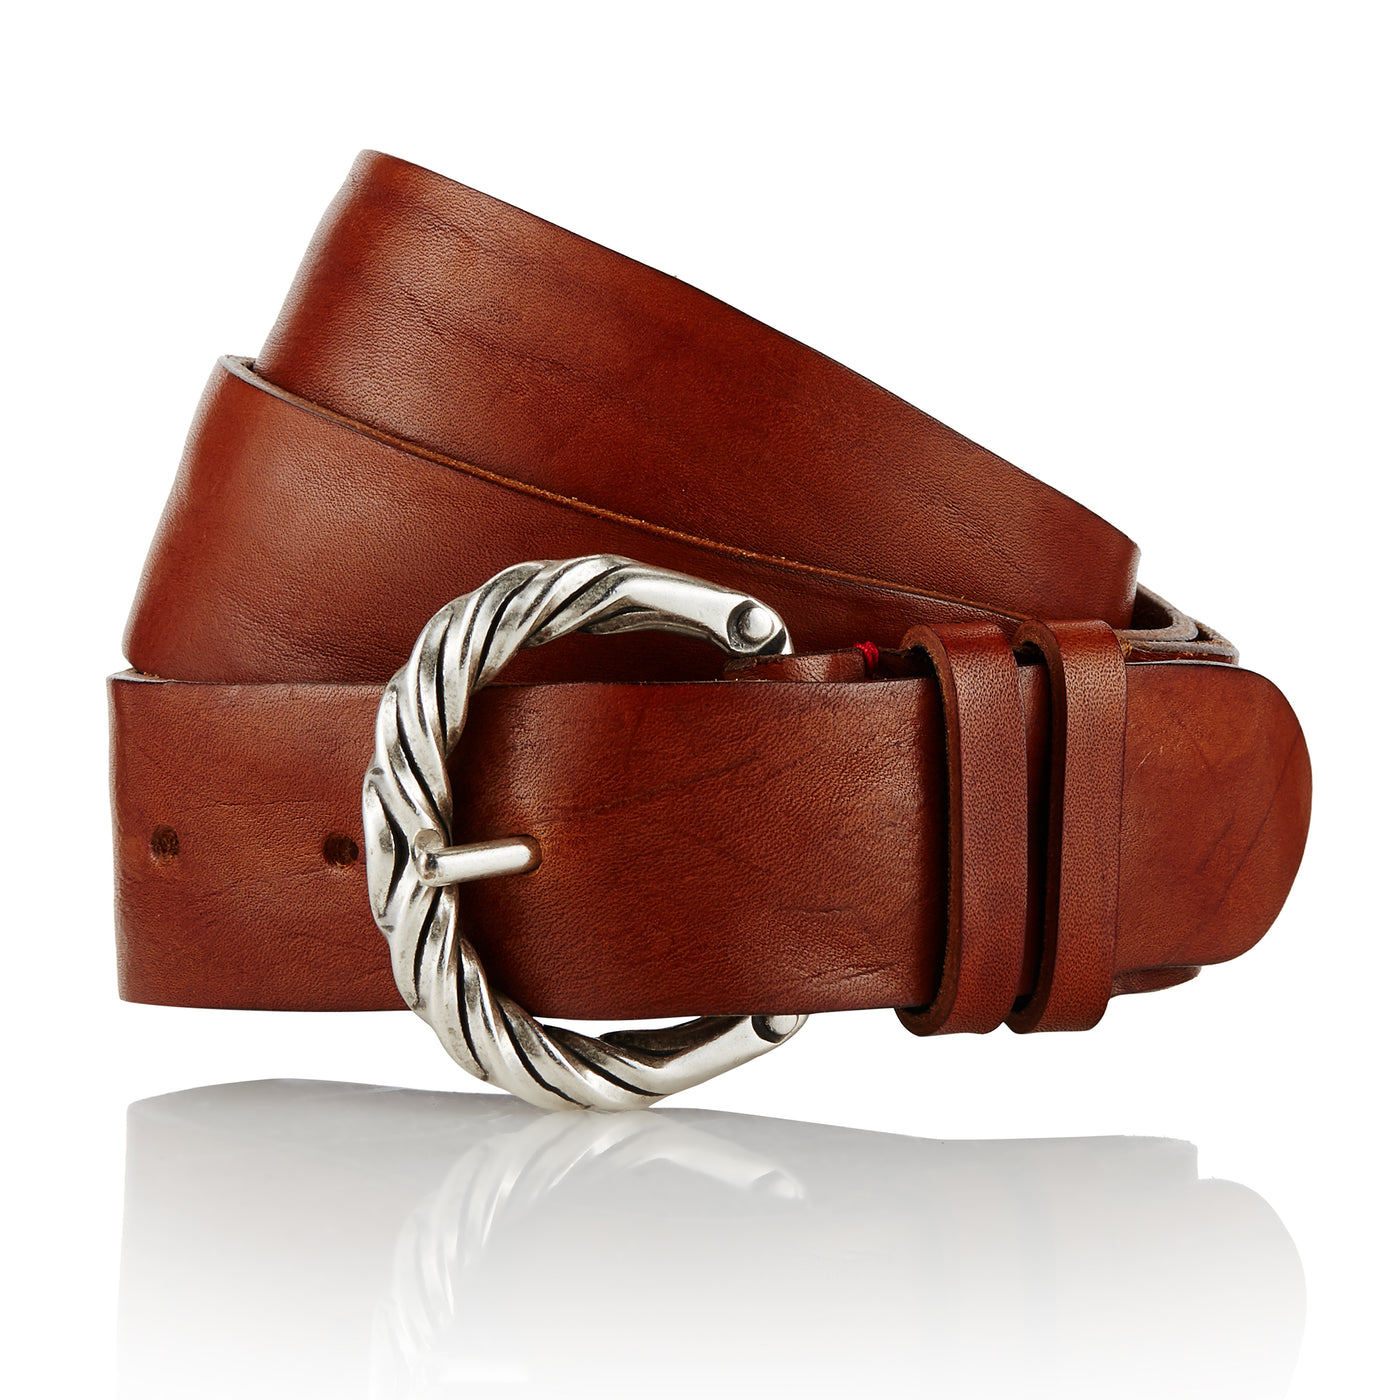 Odul - Handcrafted Italian Belt / Brown